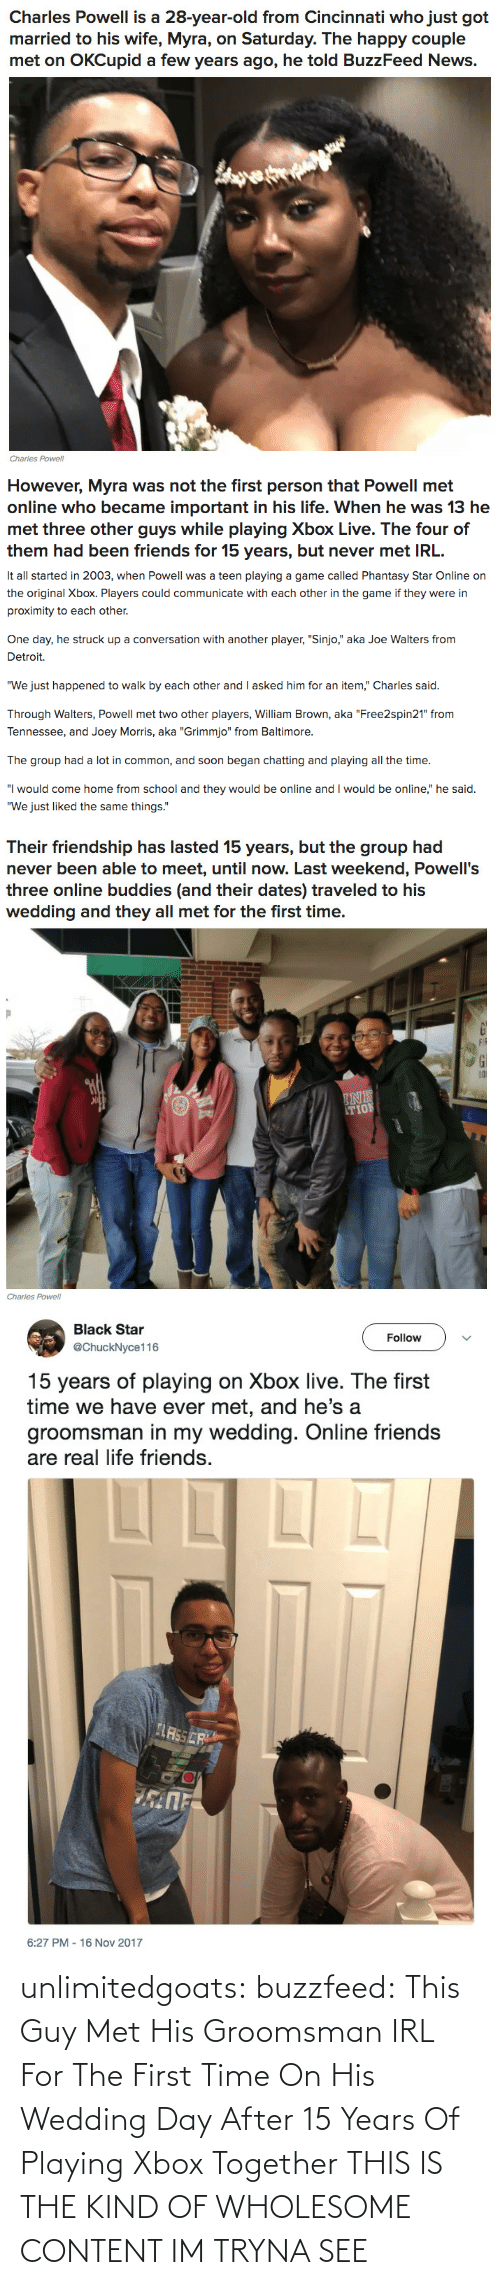 Met: unlimitedgoats:  buzzfeed: This Guy Met His Groomsman IRL For The First Time On His Wedding Day After 15 Years Of Playing Xbox Together THIS IS THE KIND OF WHOLESOME CONTENT IM TRYNA SEE